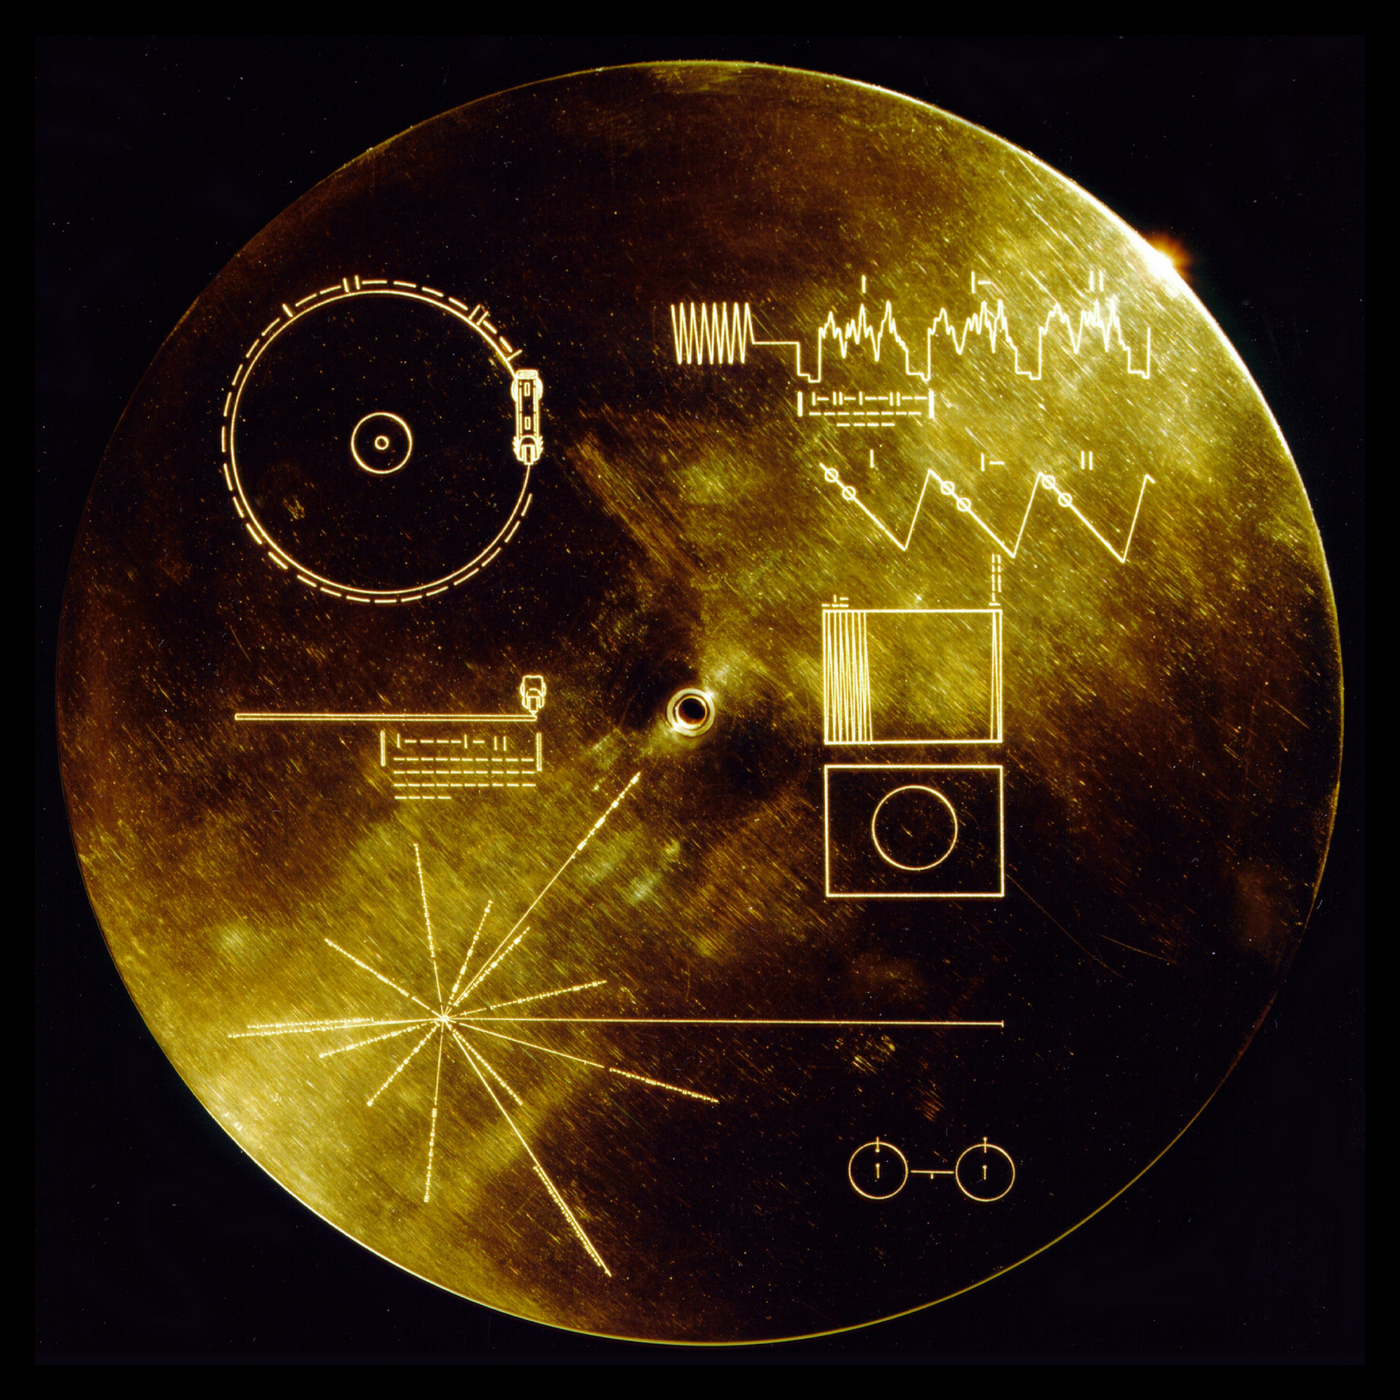 Caption: NASA's Golden Record, Credit: NASA